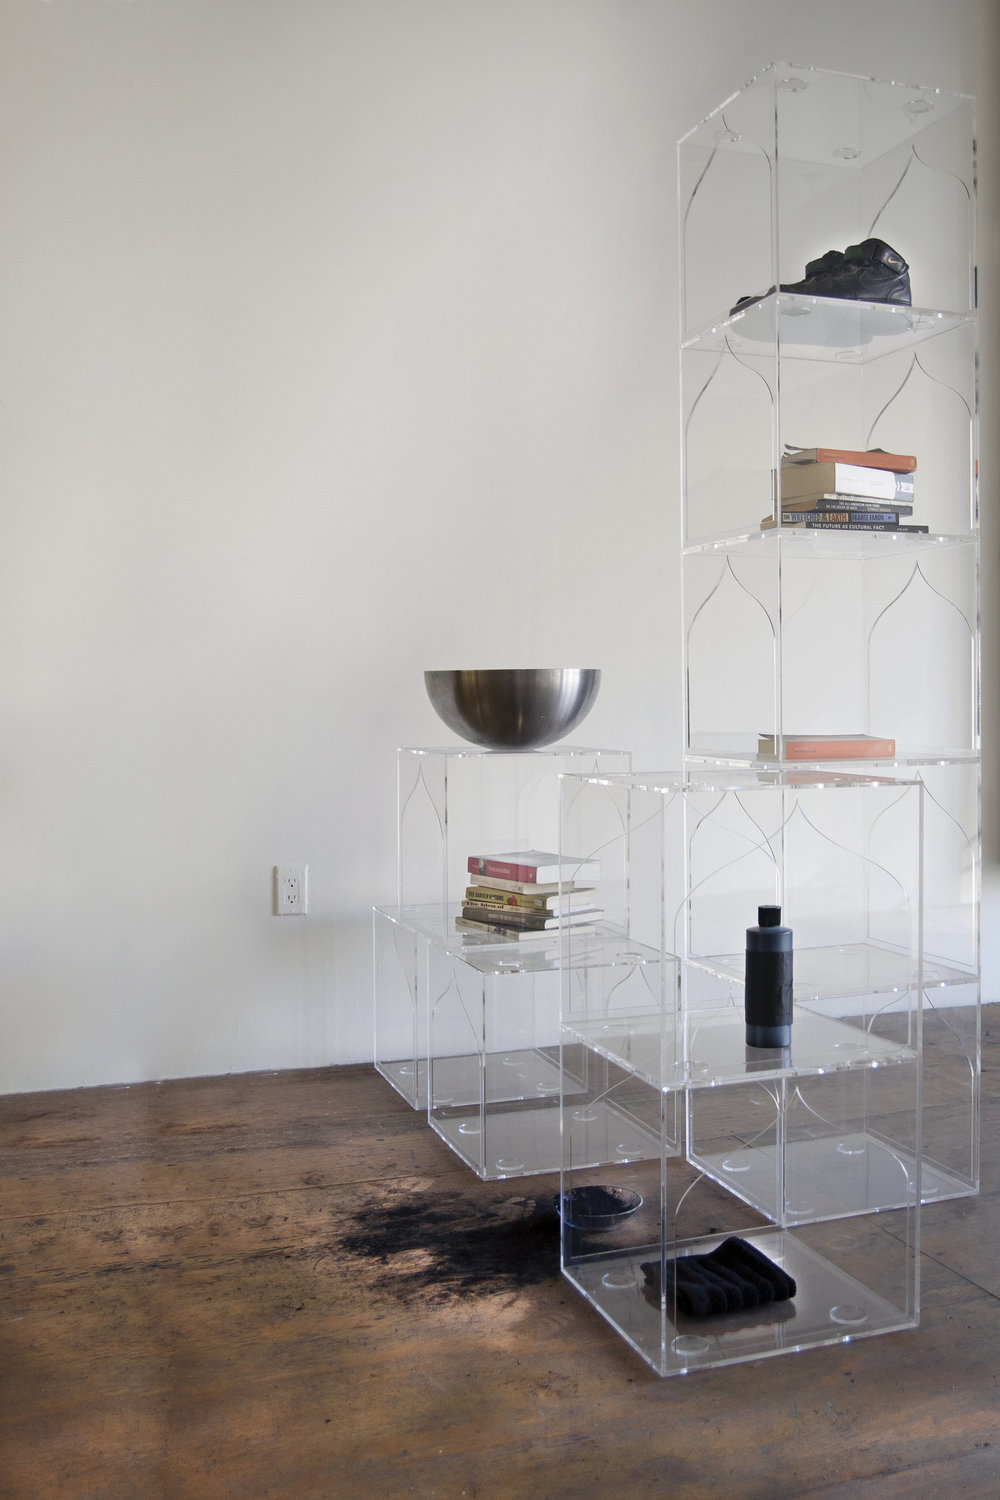 Reading Room, on Purpose, at  Participant INC., NY, 2017, Acrylic shoe boxes, 15 x 15 inches each, with artist library